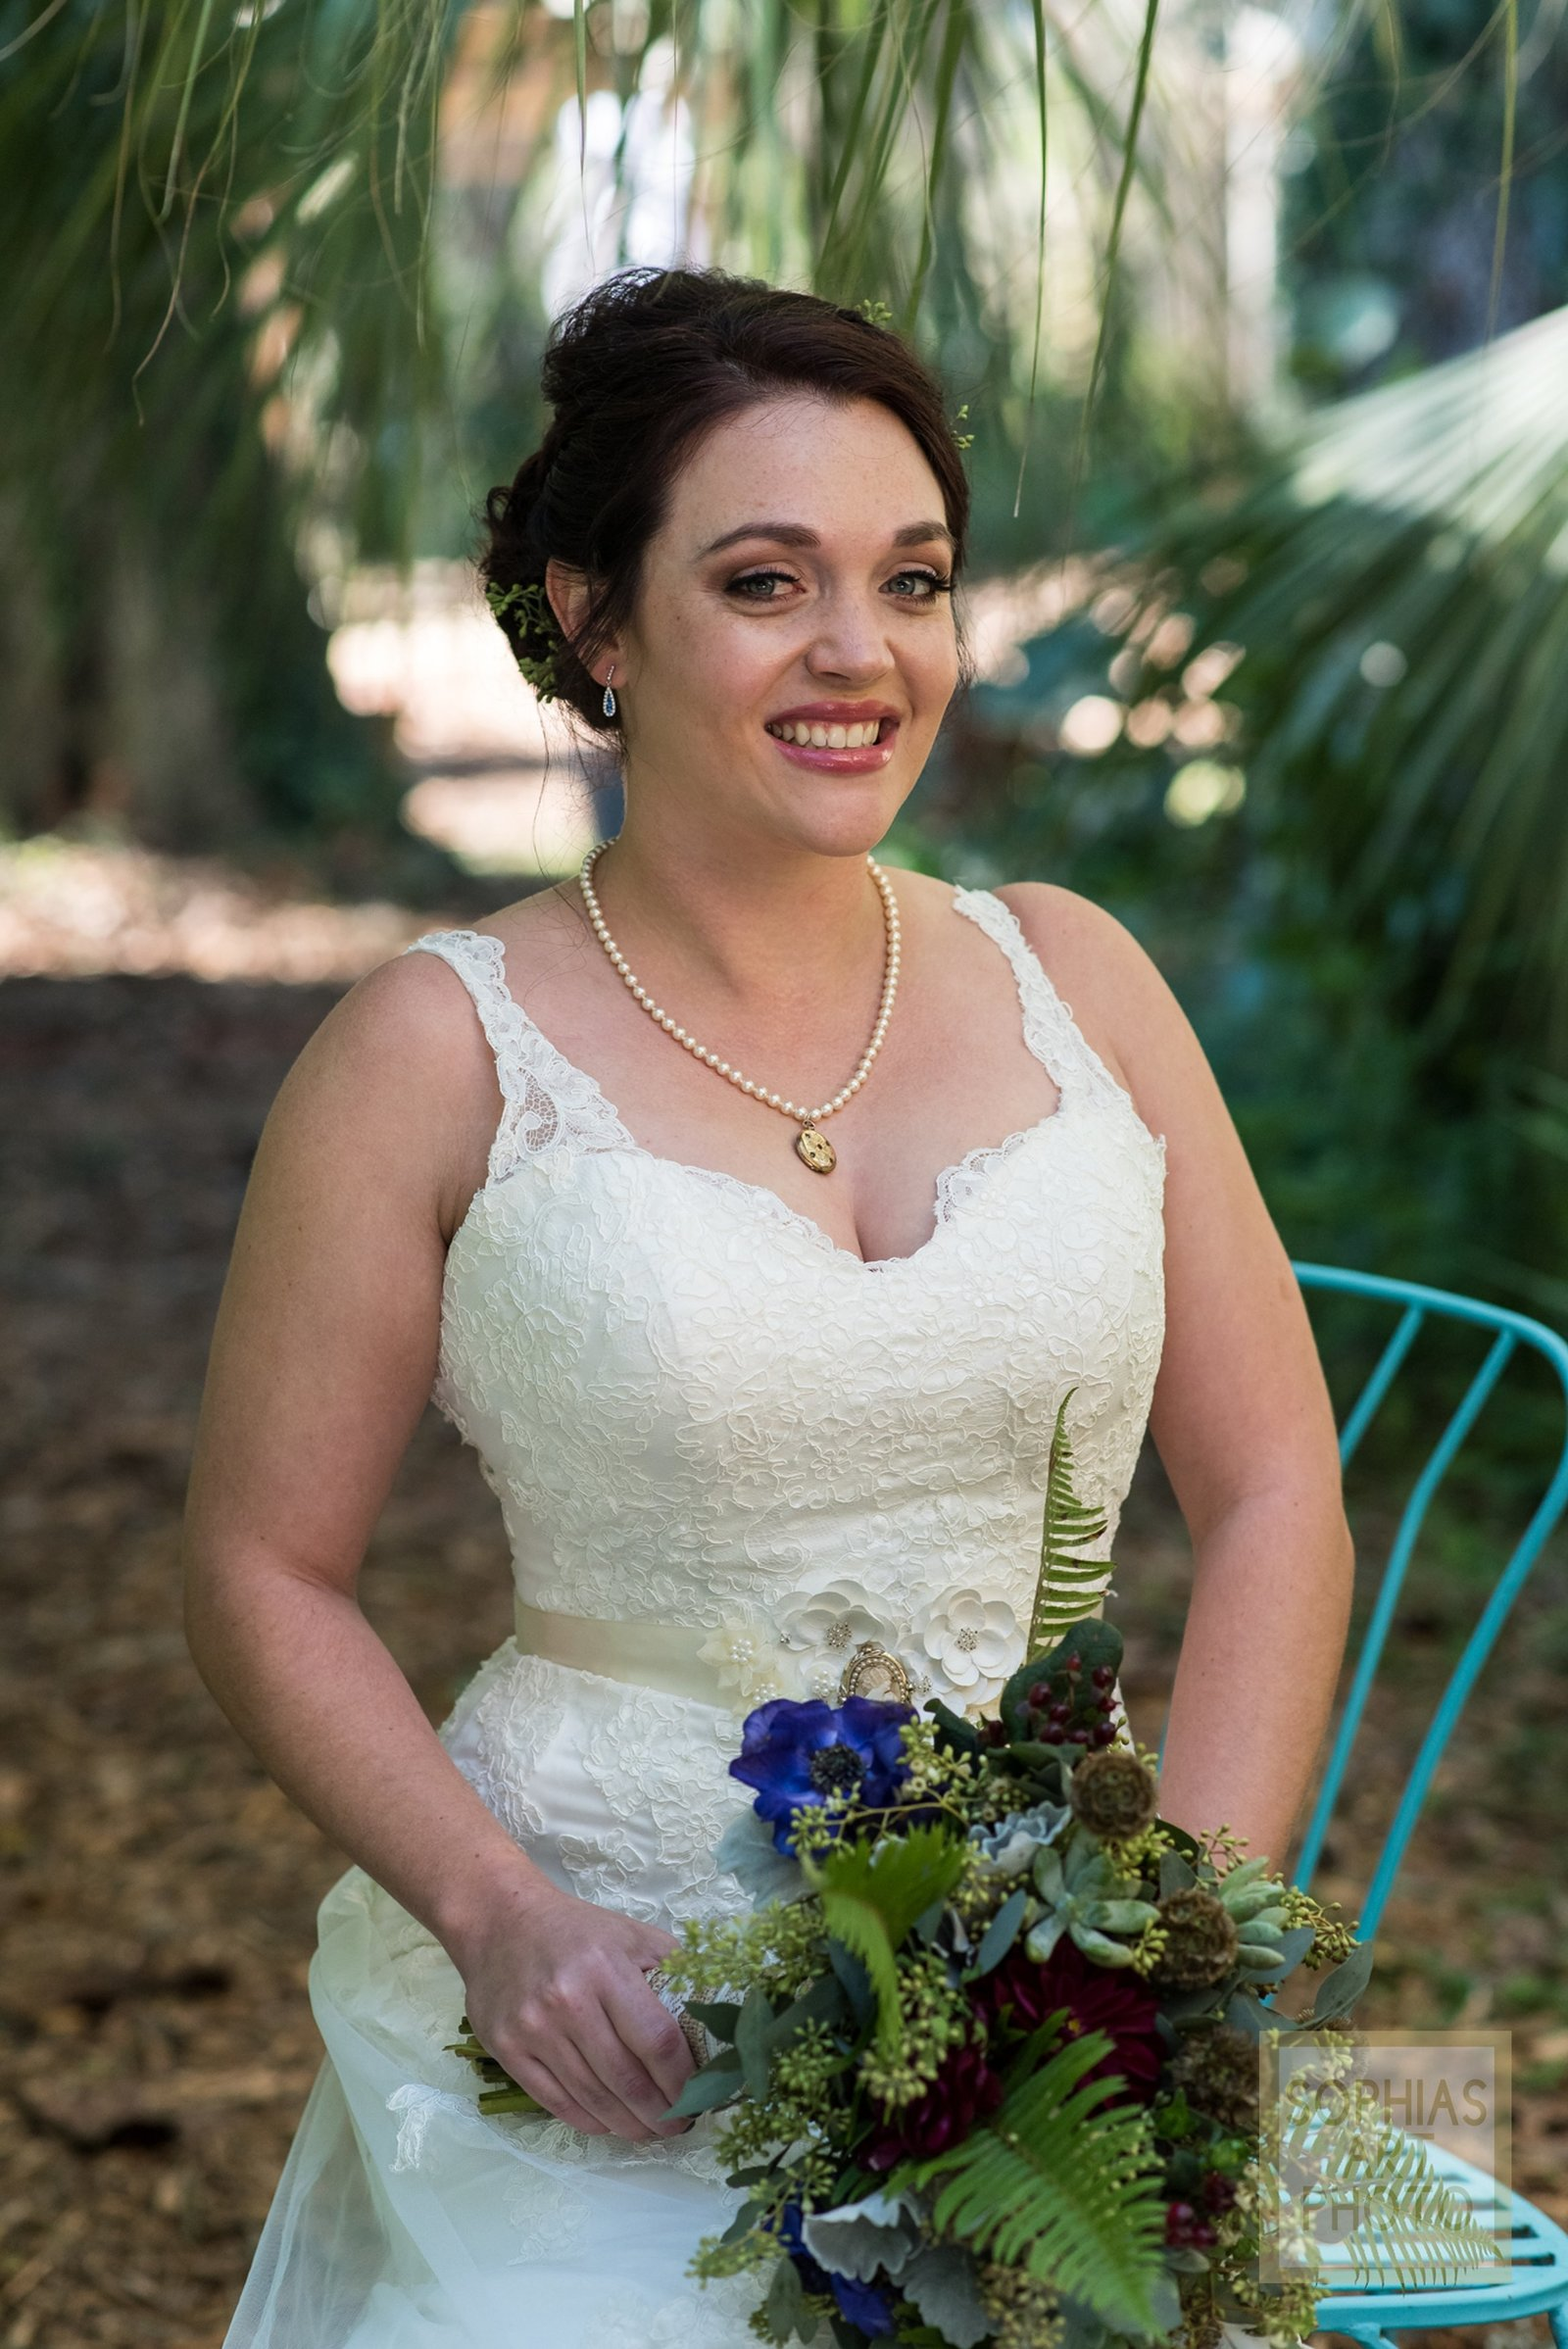 harmony-gardens-fl-wedding-haly-and-william-1020